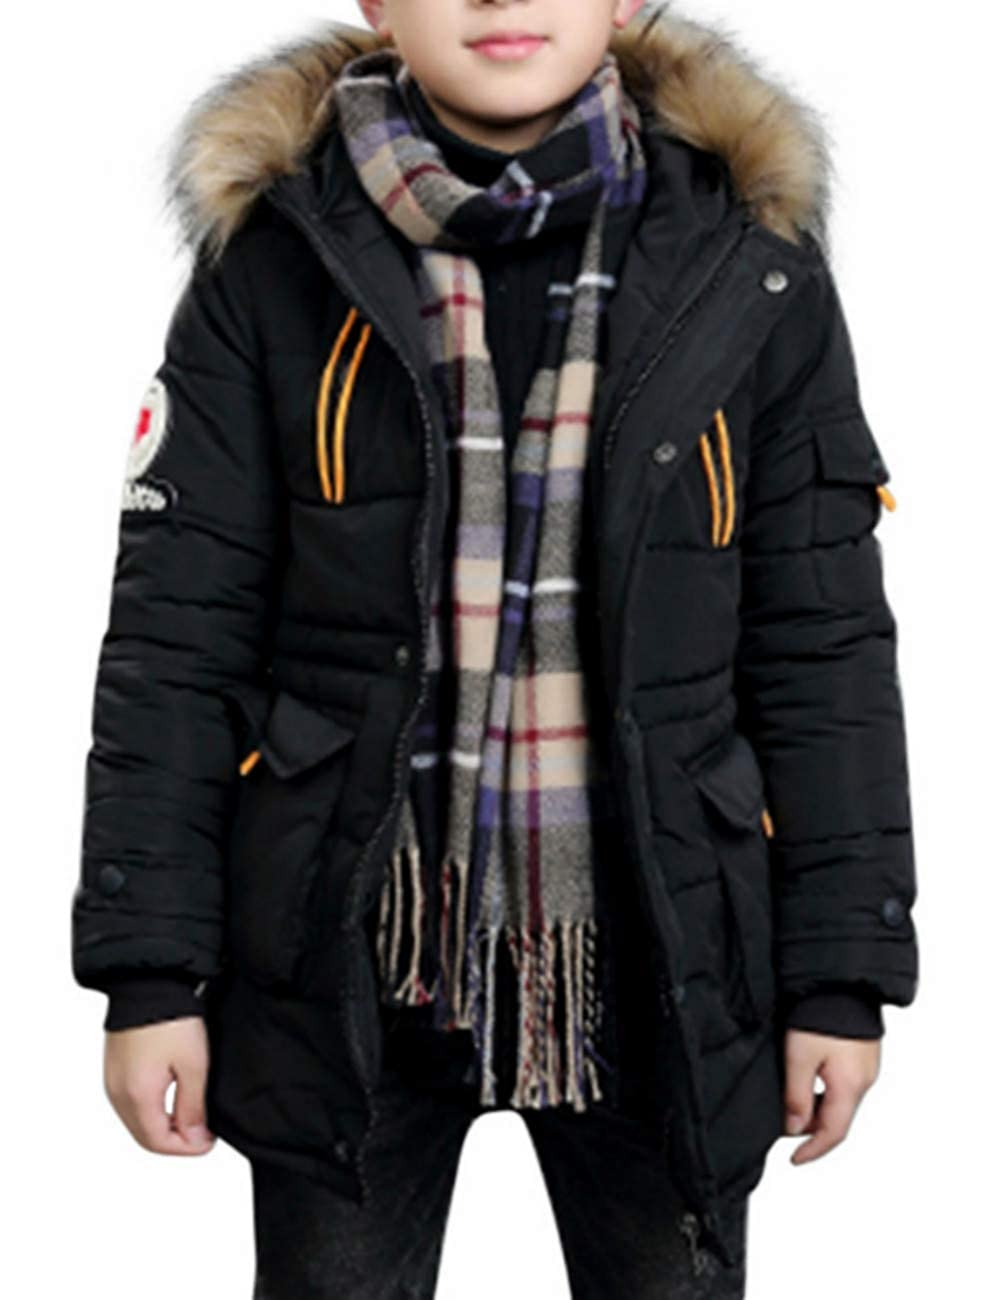 Percy Perry Kids Winter Solid Color Parka Fur Collar Hoodie Zipper Jacket Soft Long Sleeve